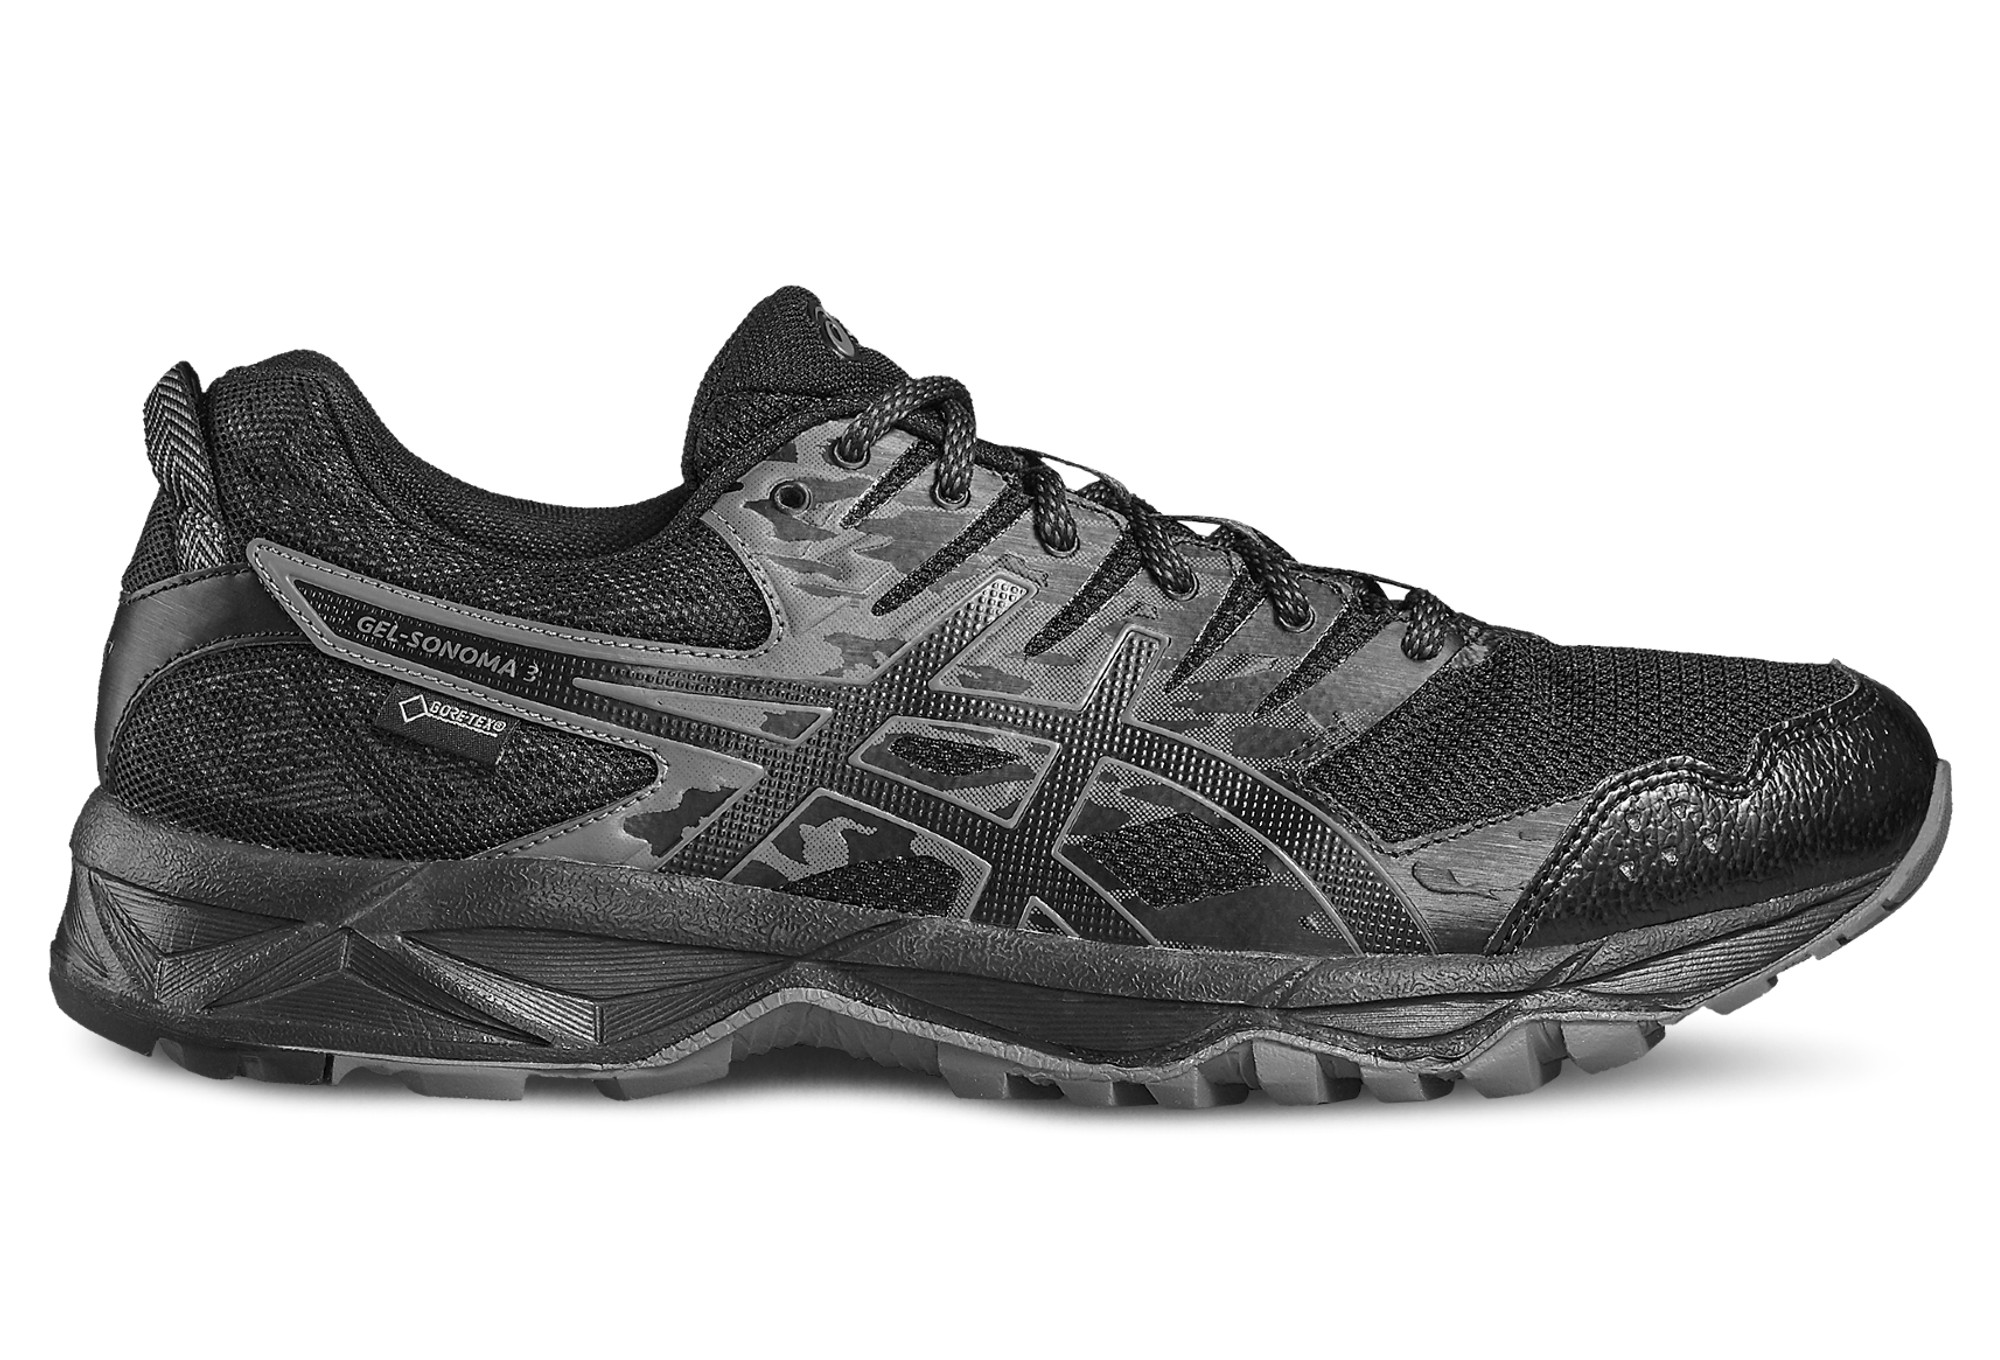 laufschuhe asics gel sonoma 3 goretex herren. Black Bedroom Furniture Sets. Home Design Ideas